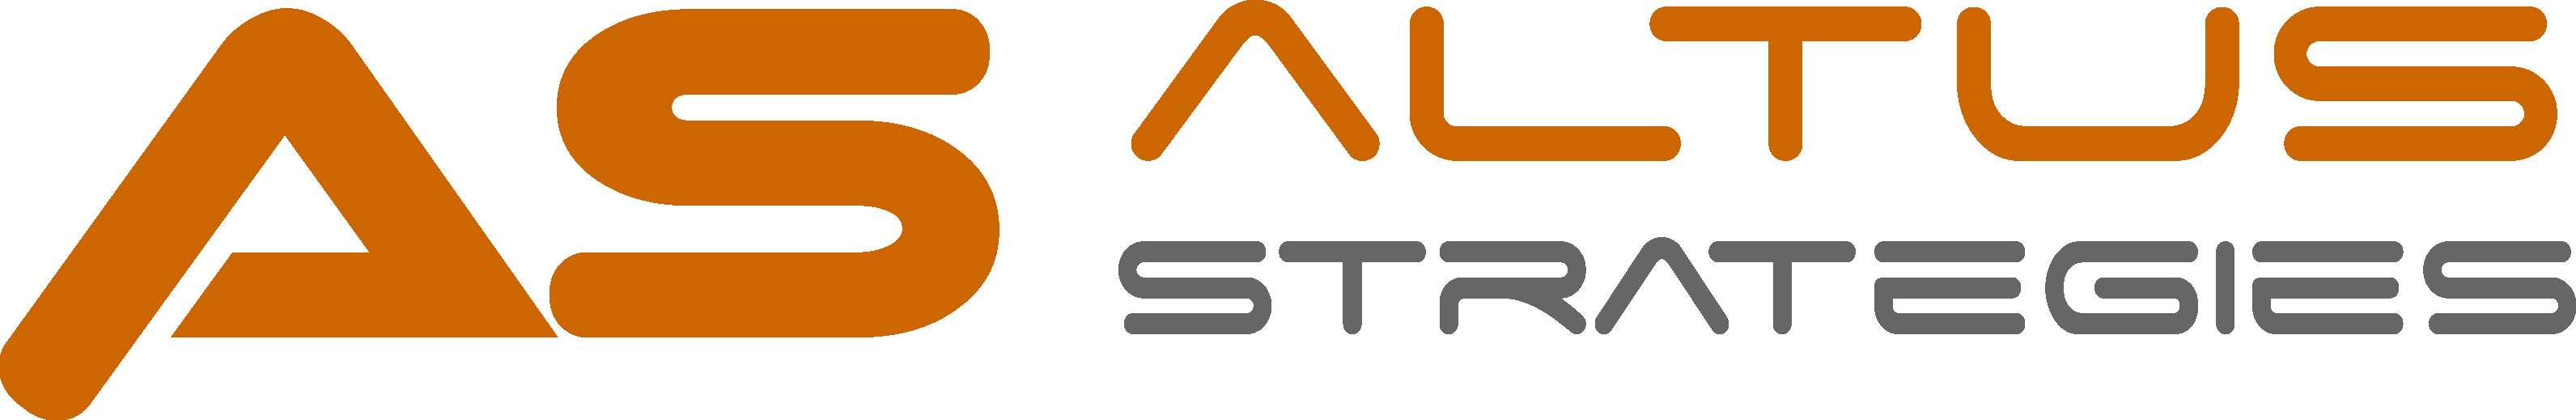 altus logo High Res